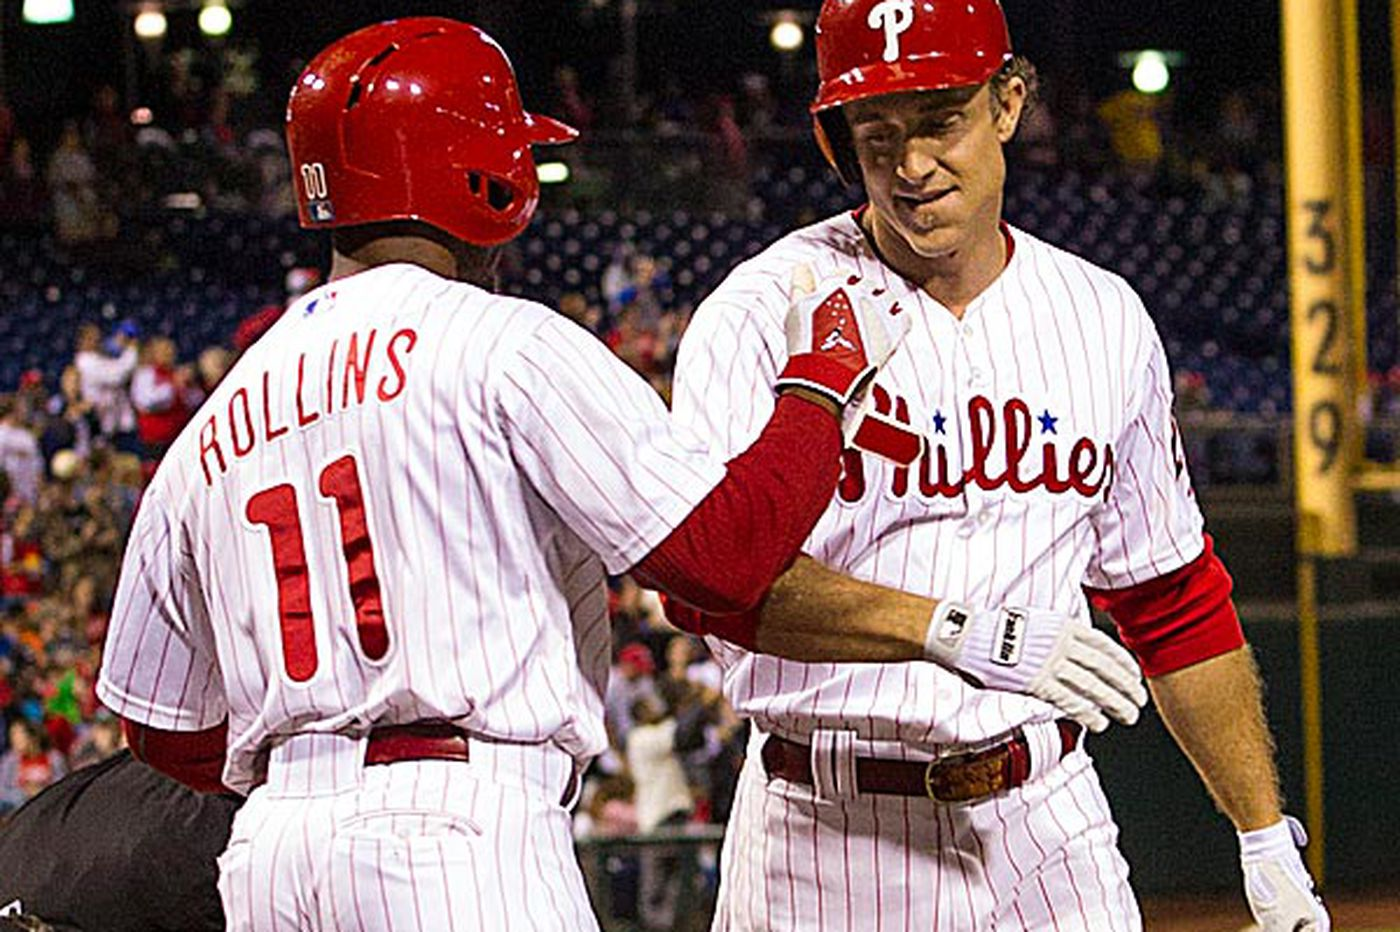 The Phillies' argument for their lineup